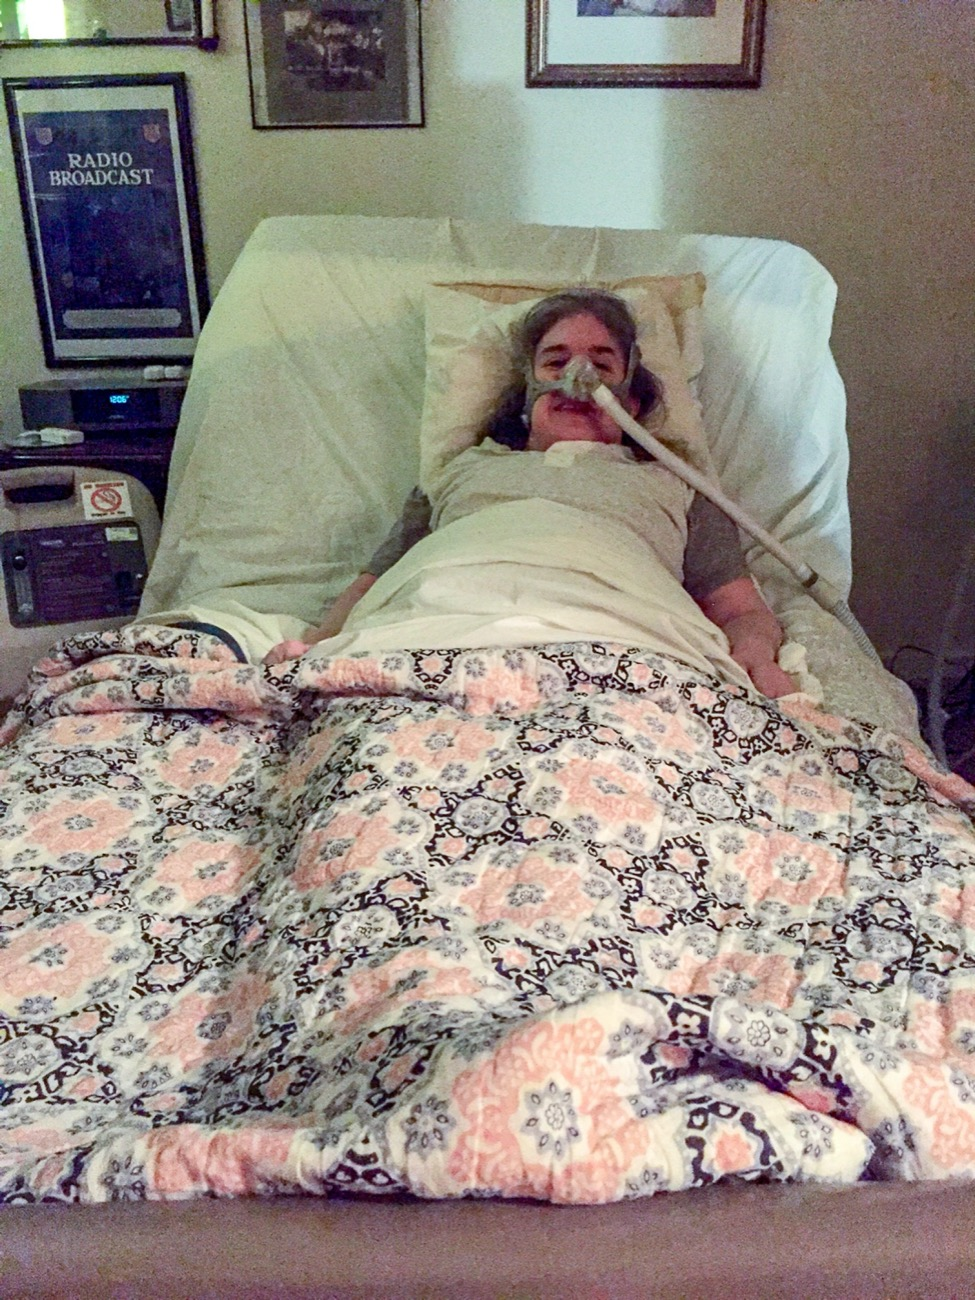 Ingrid is laying in bed with a mask and breathing tube attached to her face. She is looking directly at the camera. There is a pink floral bedspread on the bed and framed posters on the wall behind her.